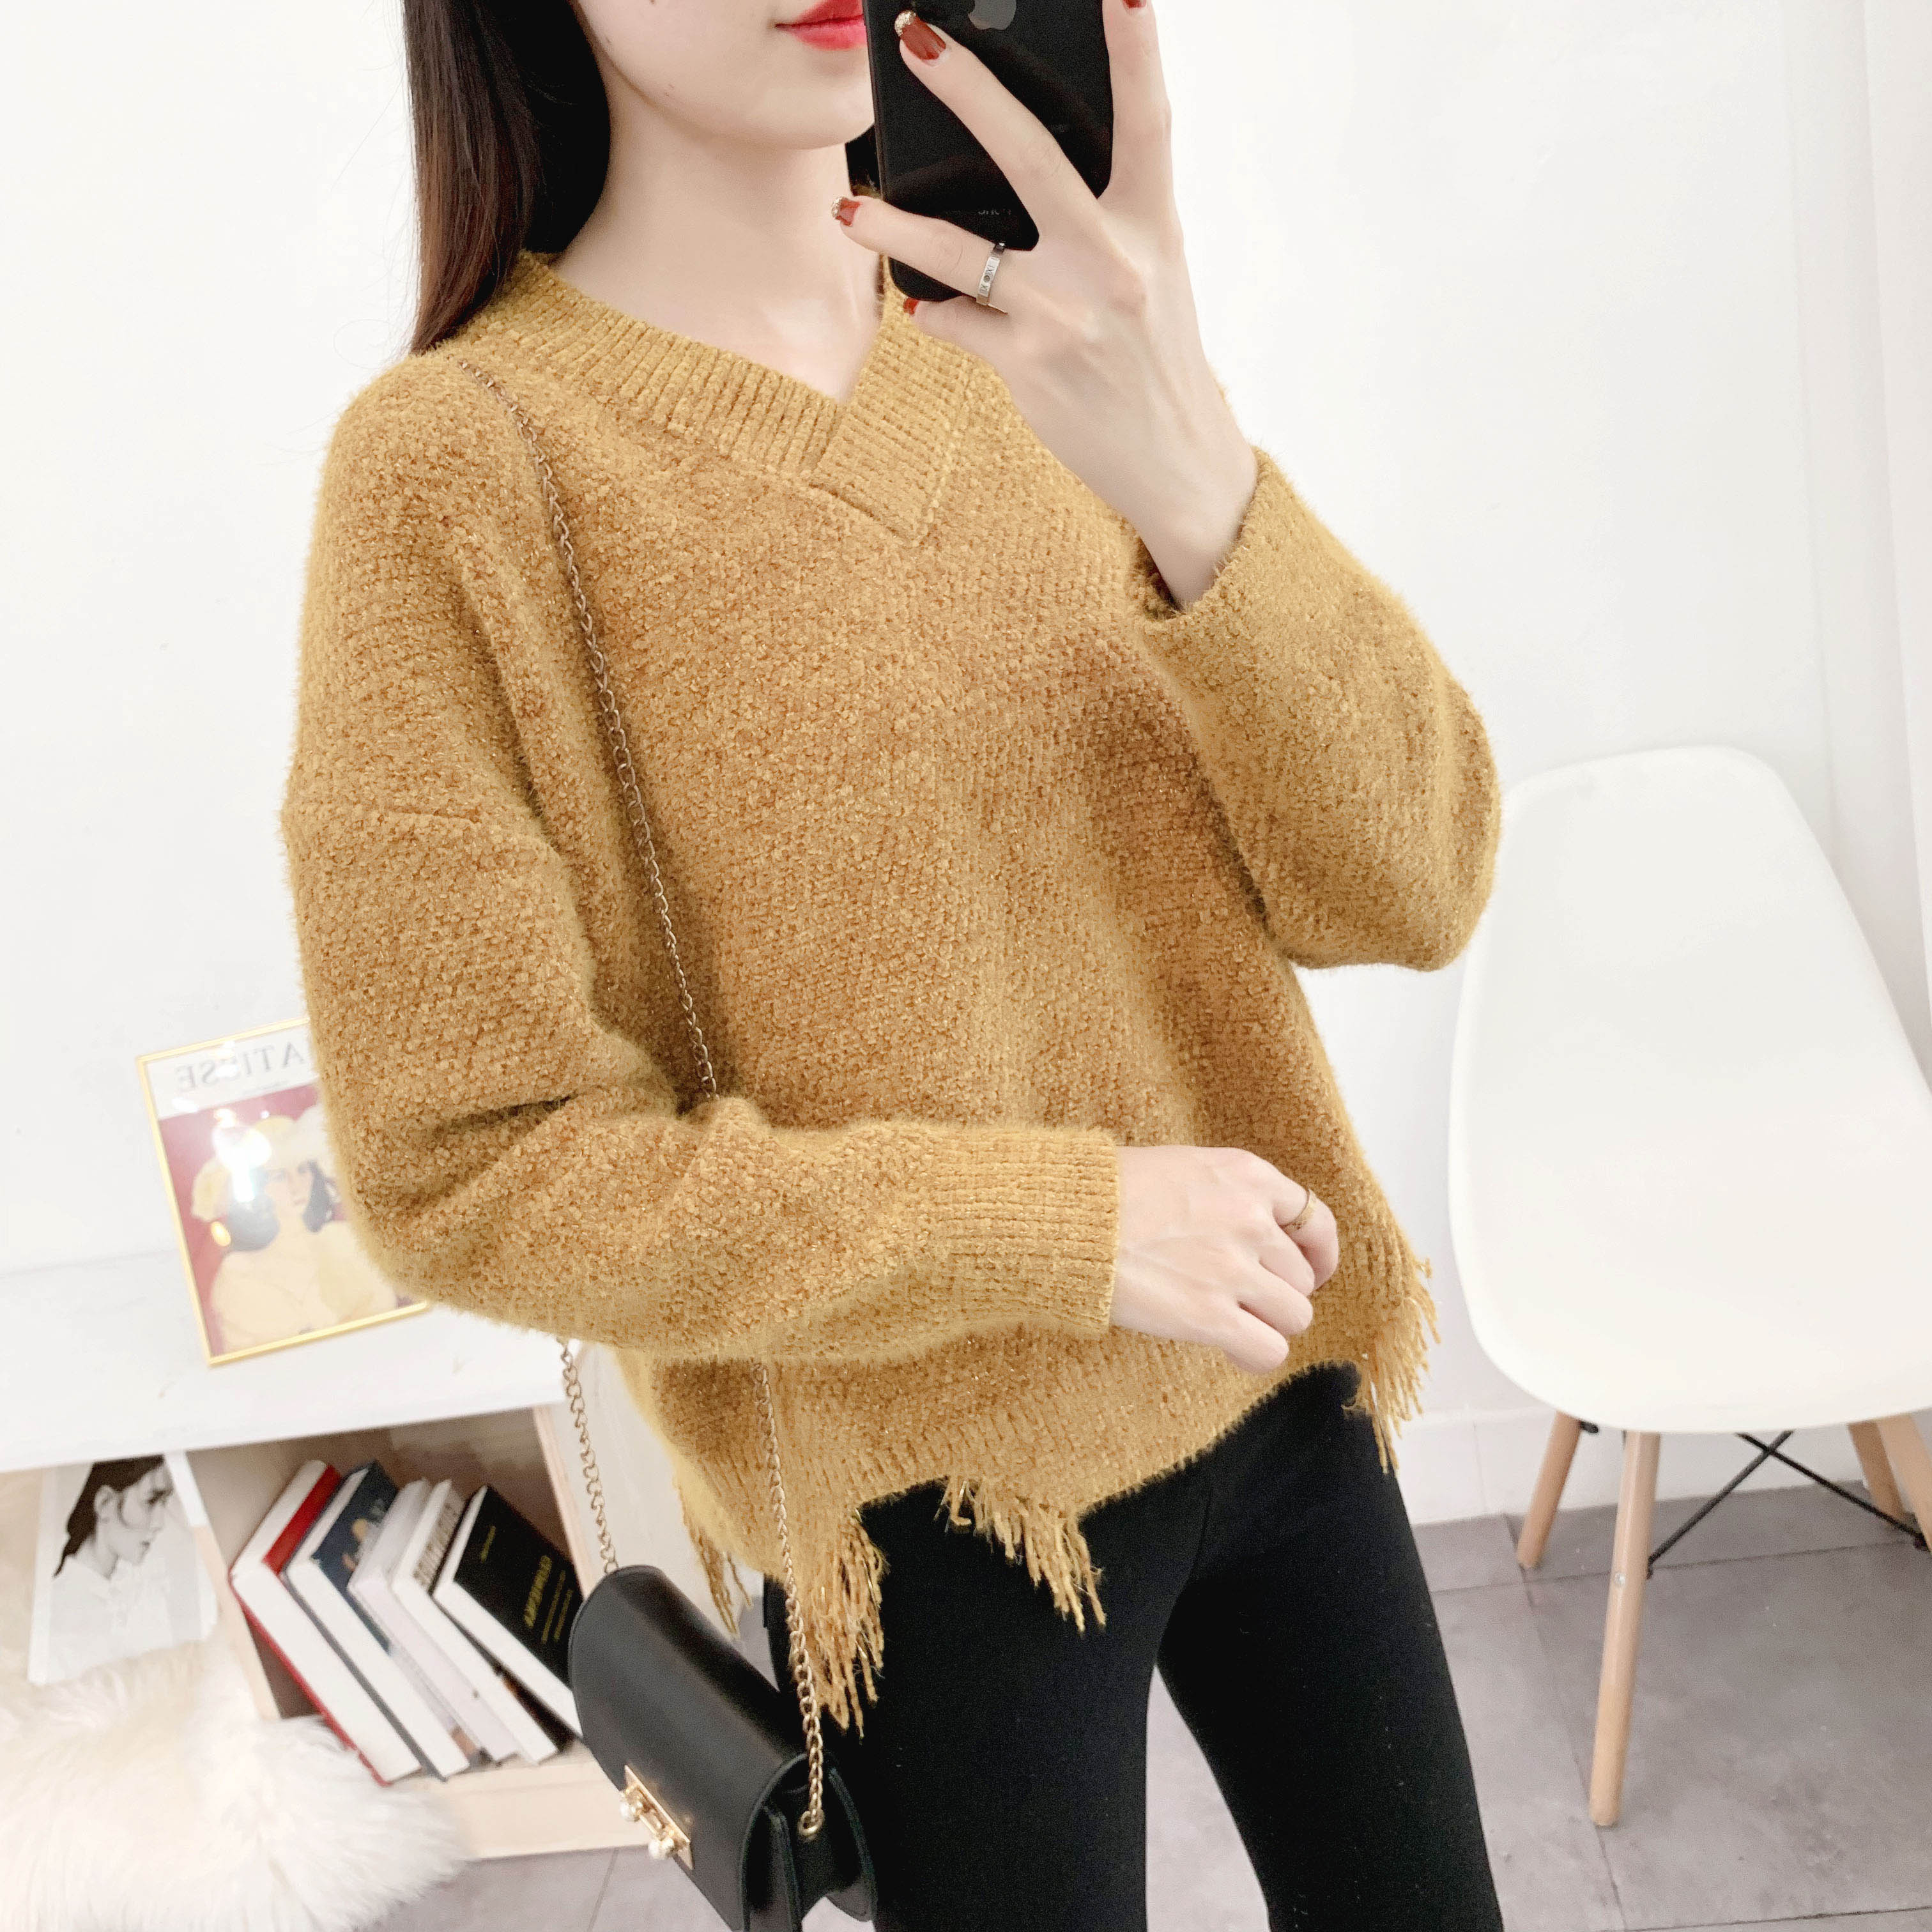 Autumn and winter 2020 new chenille sweater long sleeve Pullover round neck V-neck warm top